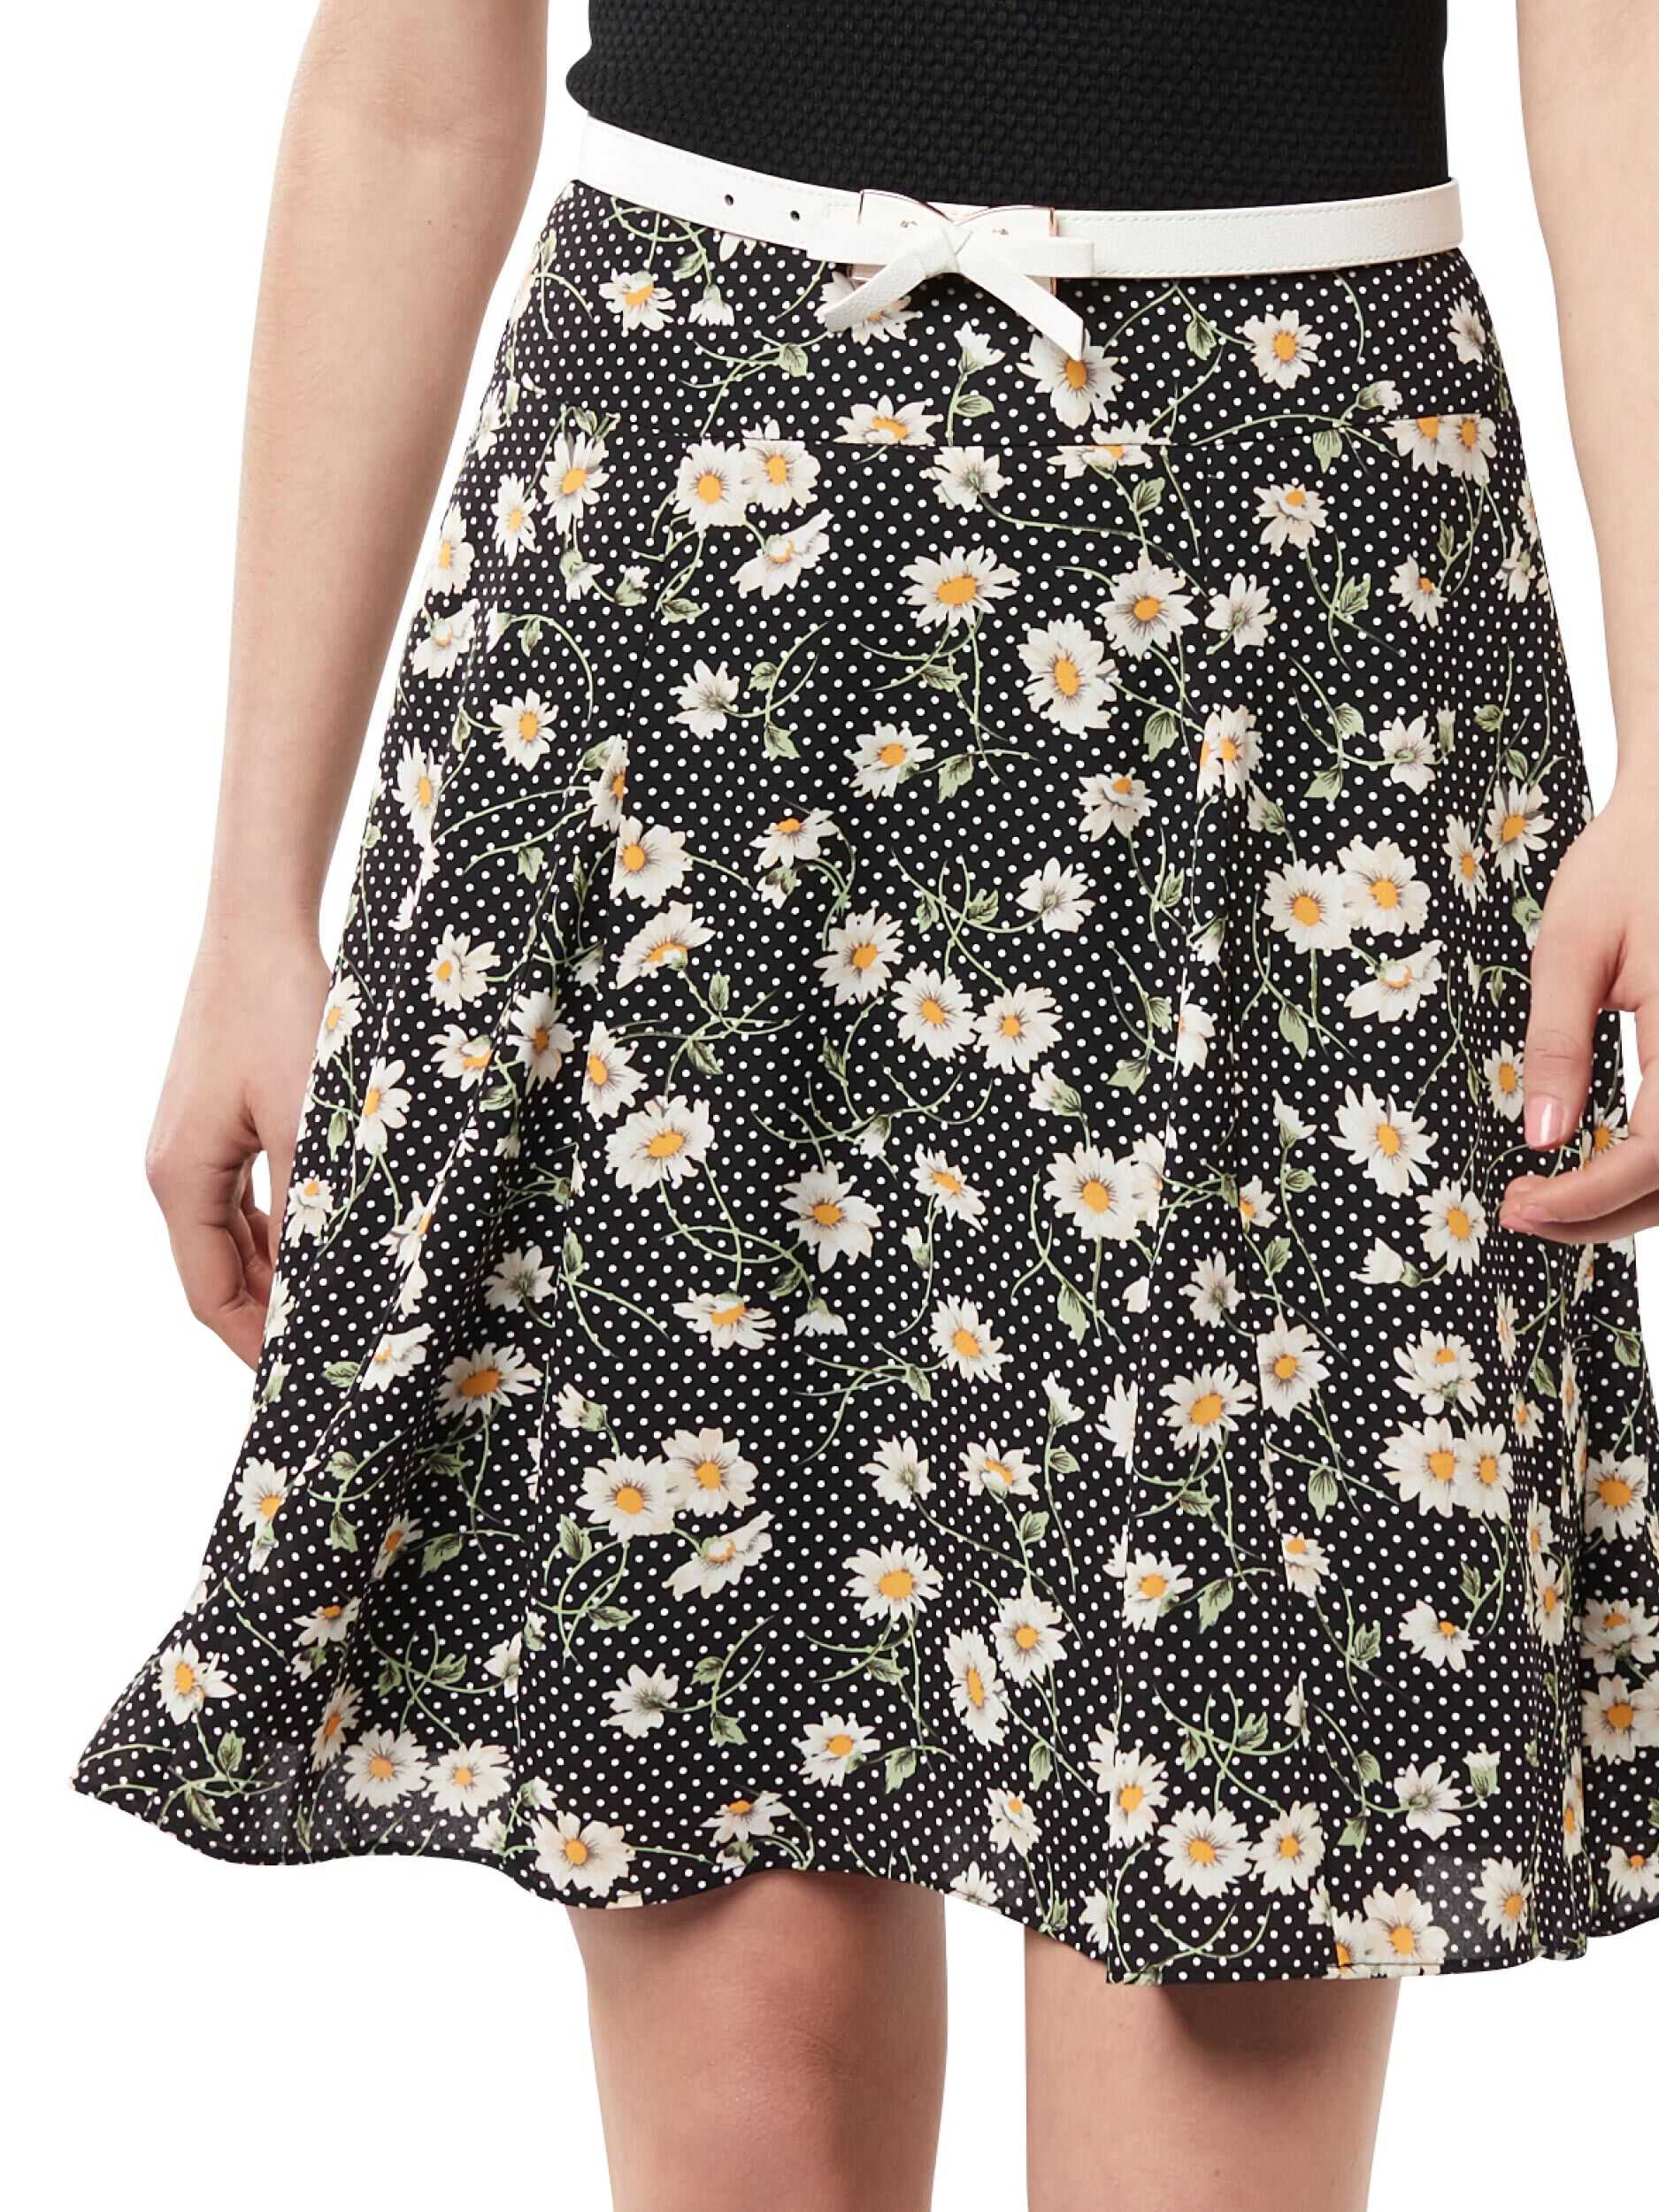 Daisy Do Skirt